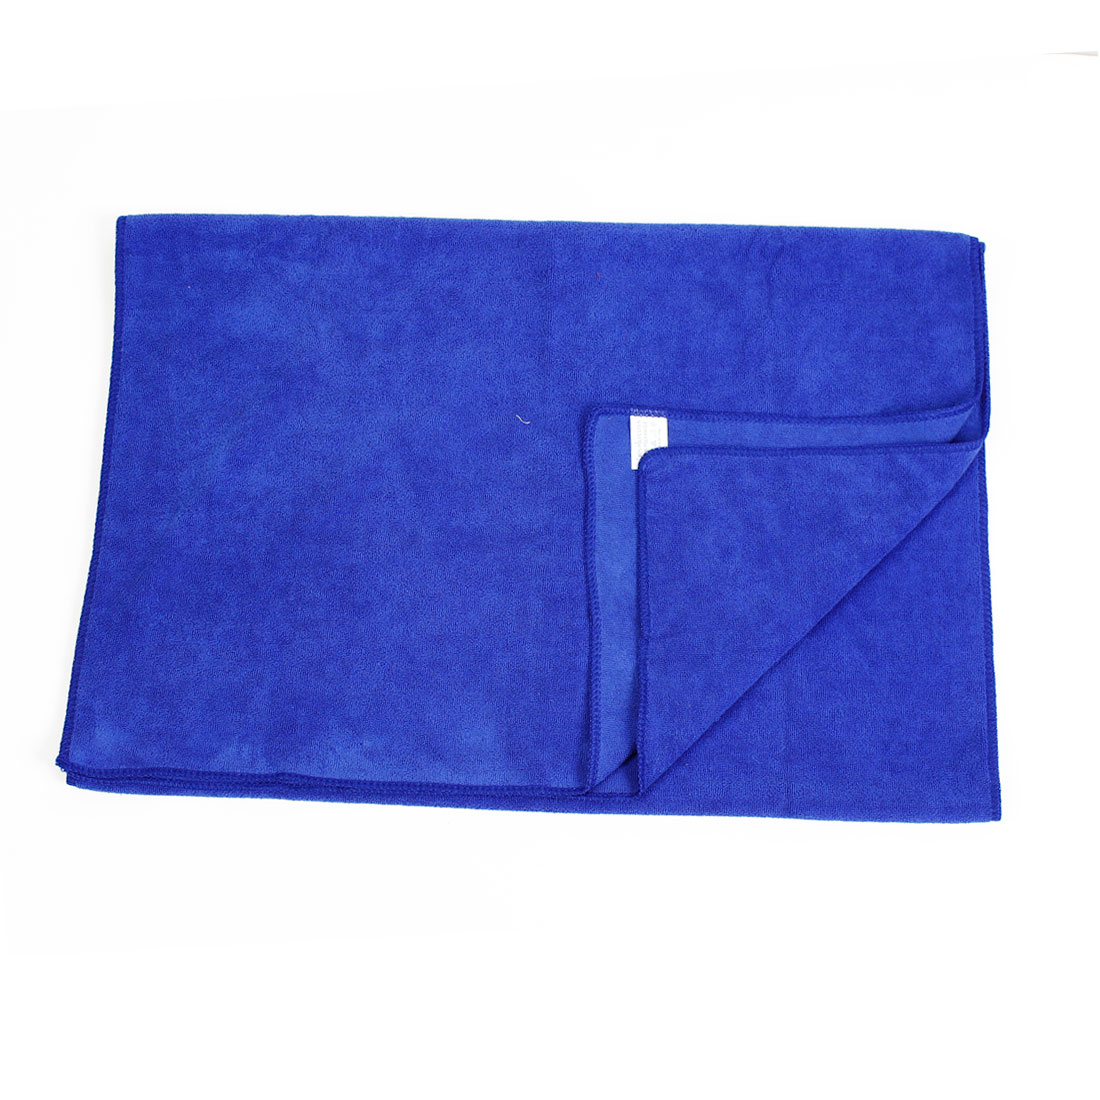 Rectangular Microfiber Cleaning Cloth Towel Blue 160cmx65cm for Car Vehicle